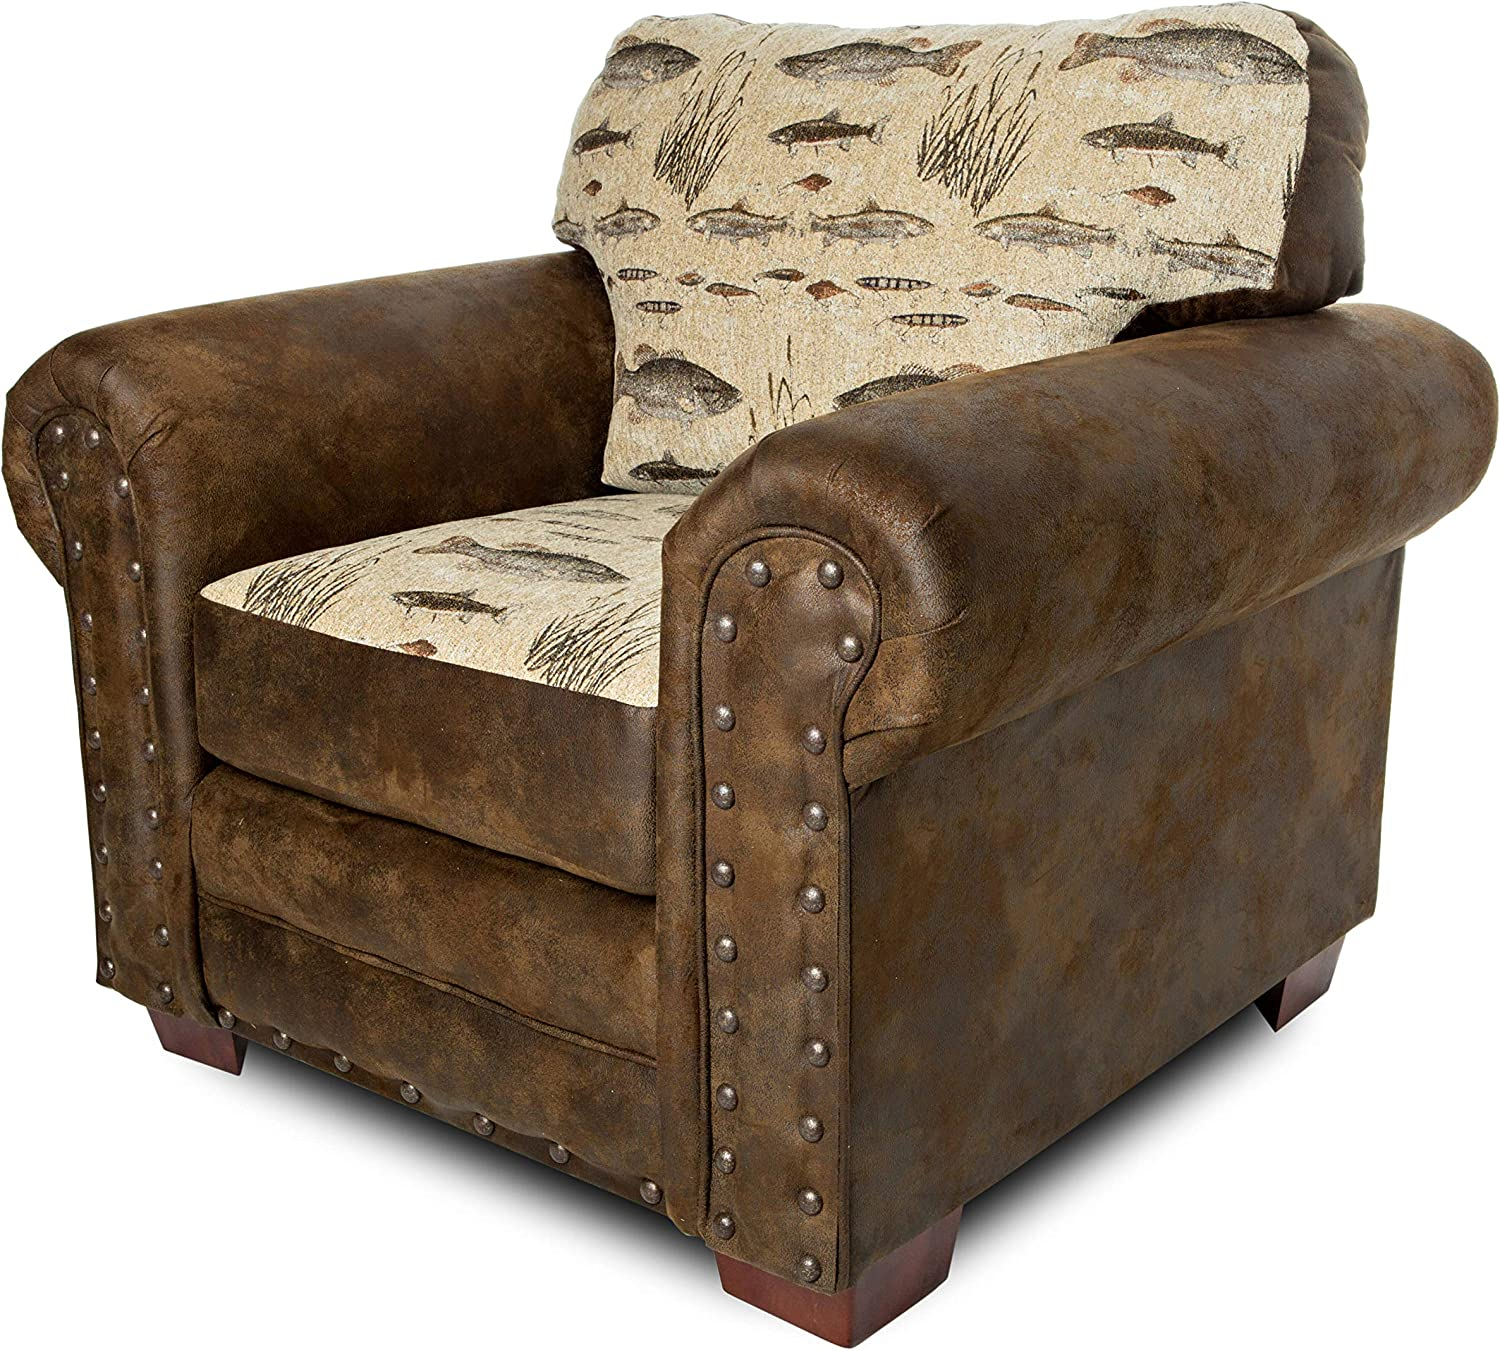 American Furniture Classics Model Angler's Cove Arm chair, Brown